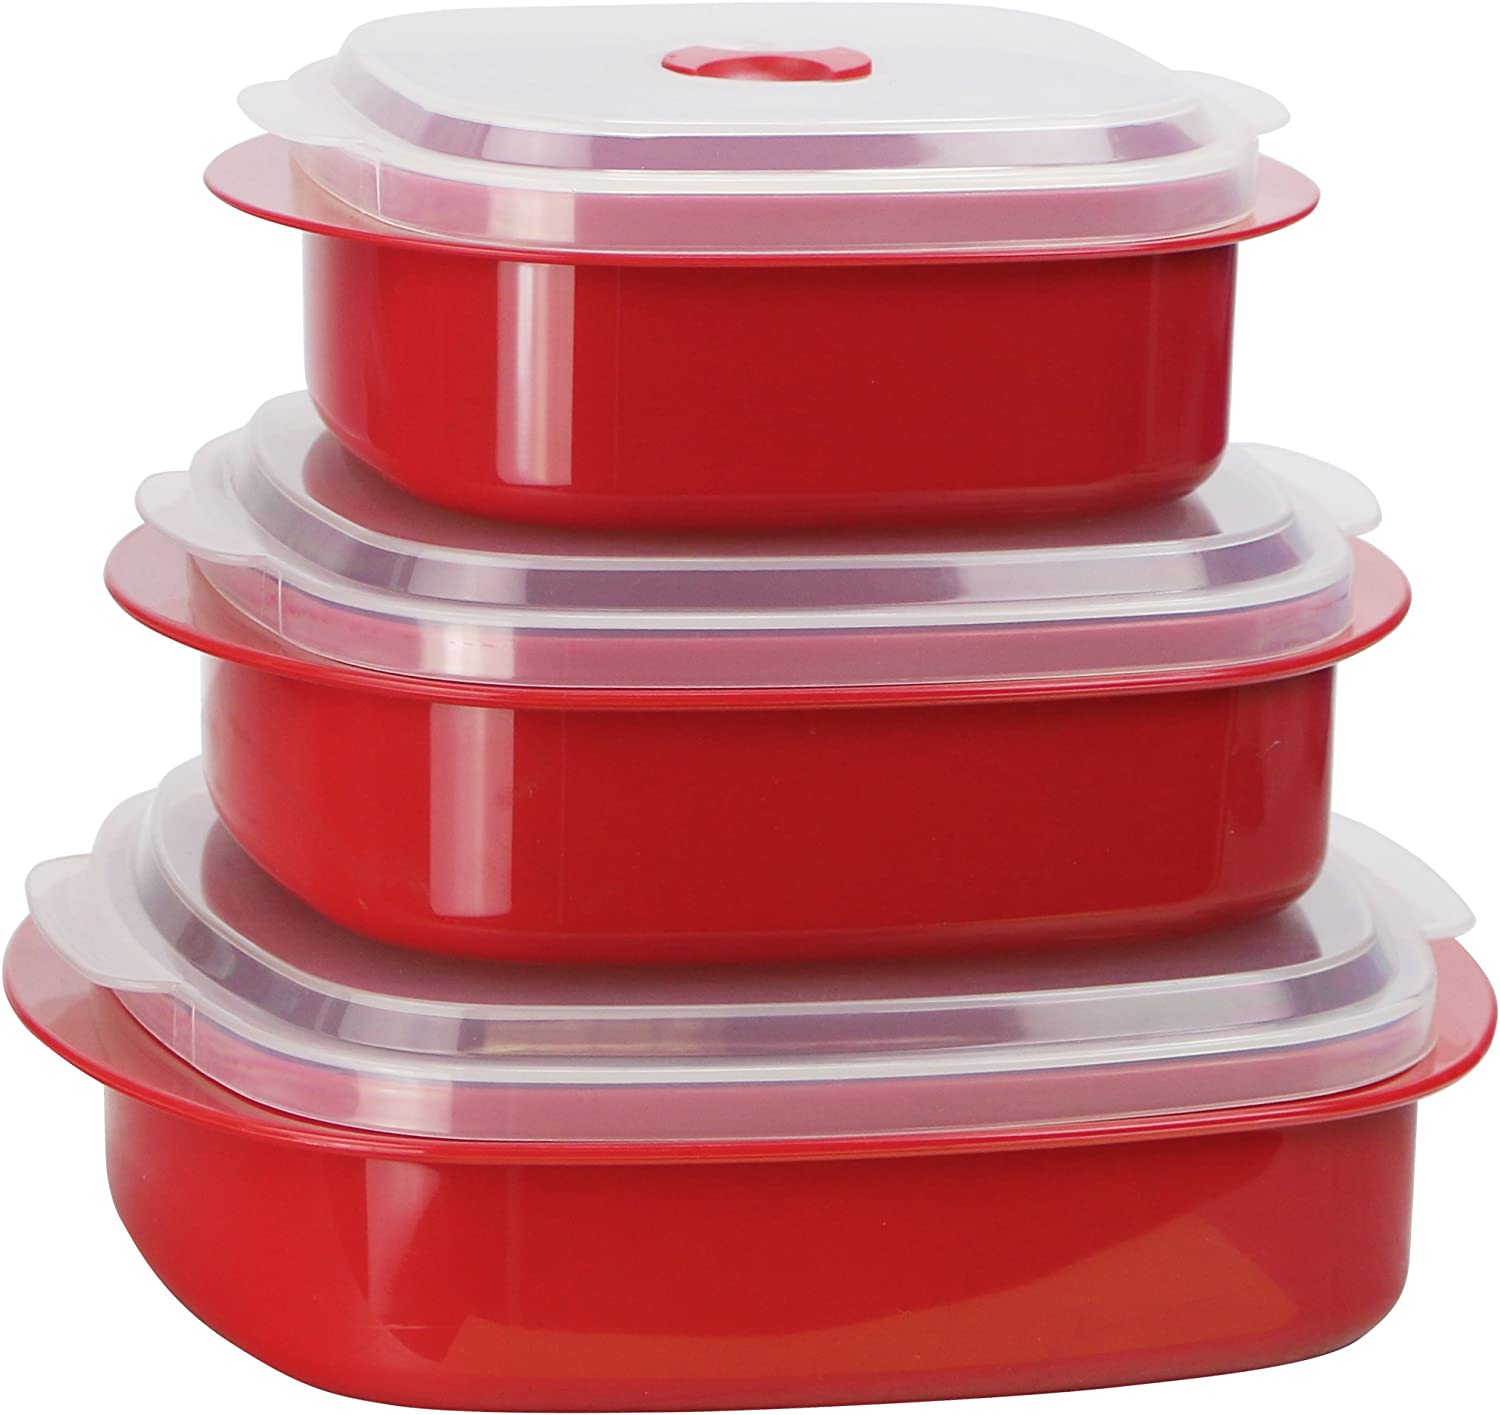 Calypso Basics by Reston Lloyd 6-Piece Microwave Cookware, Steamer and Storage Set, Red